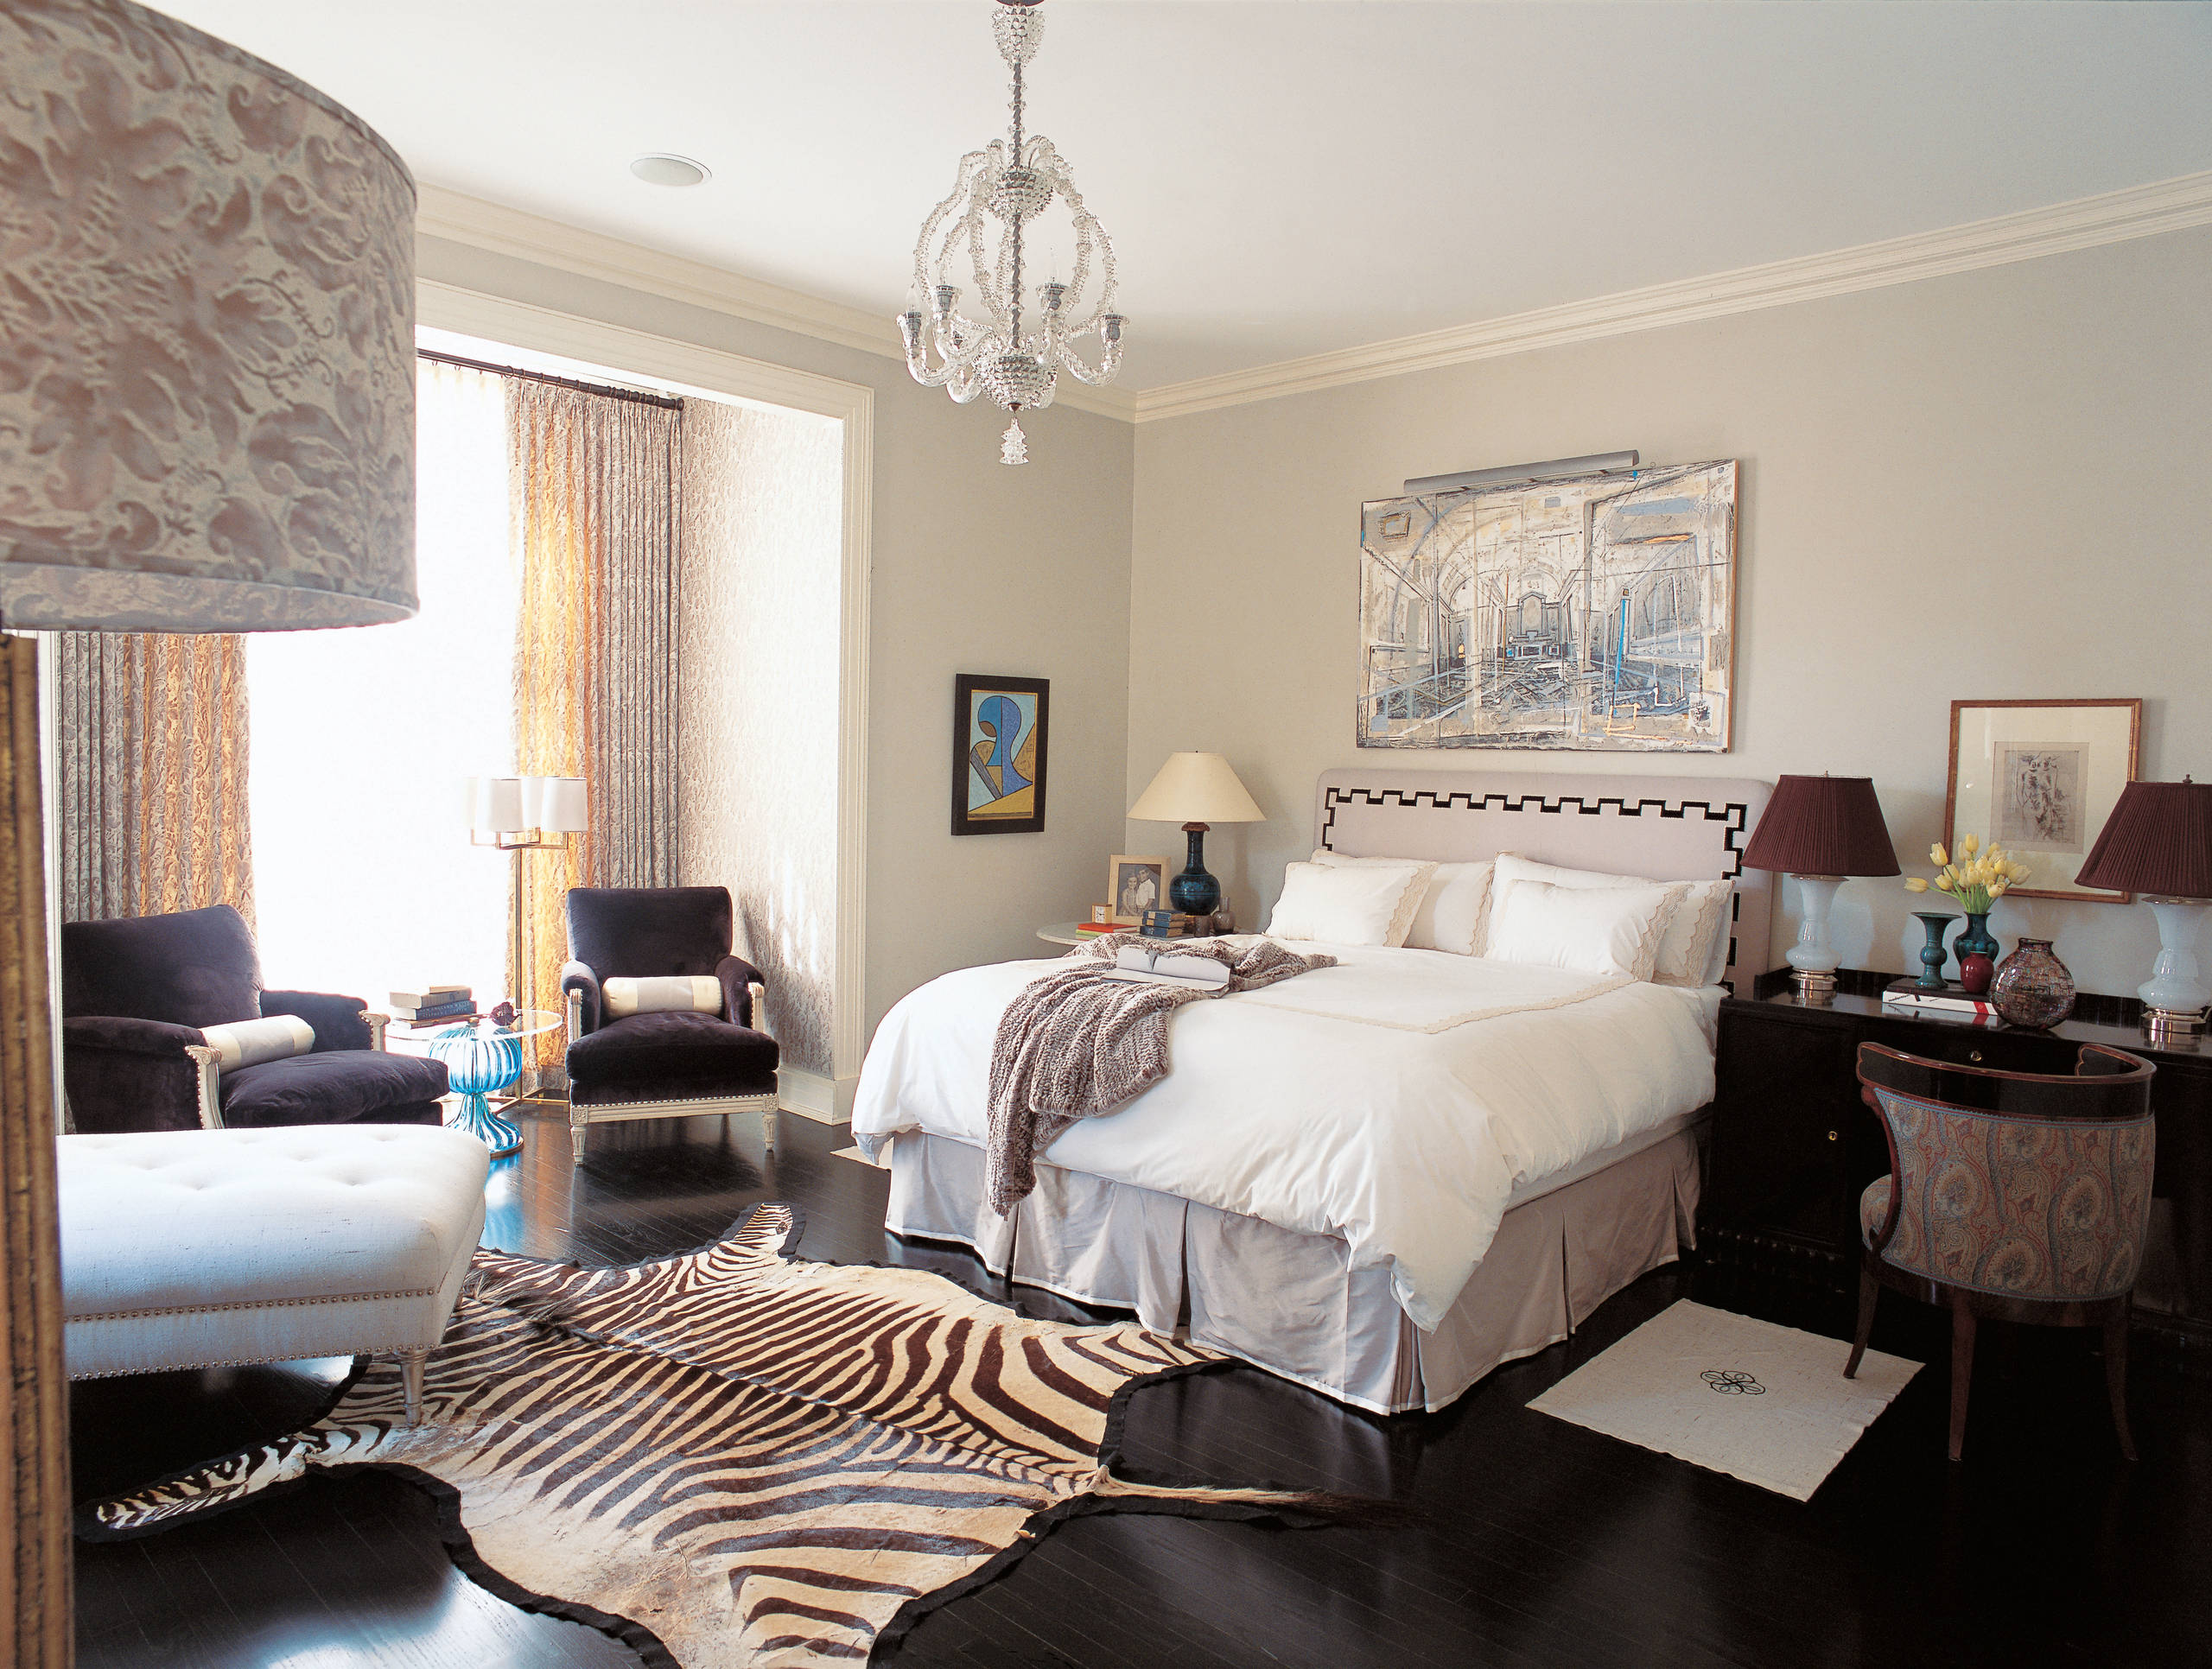 Zebra Rug With Dark Wood Floors And Contemporary Curtains Also White Bedding Plus Velvet Armchairs And Upholstered Headboard For Modern Bedroom Design